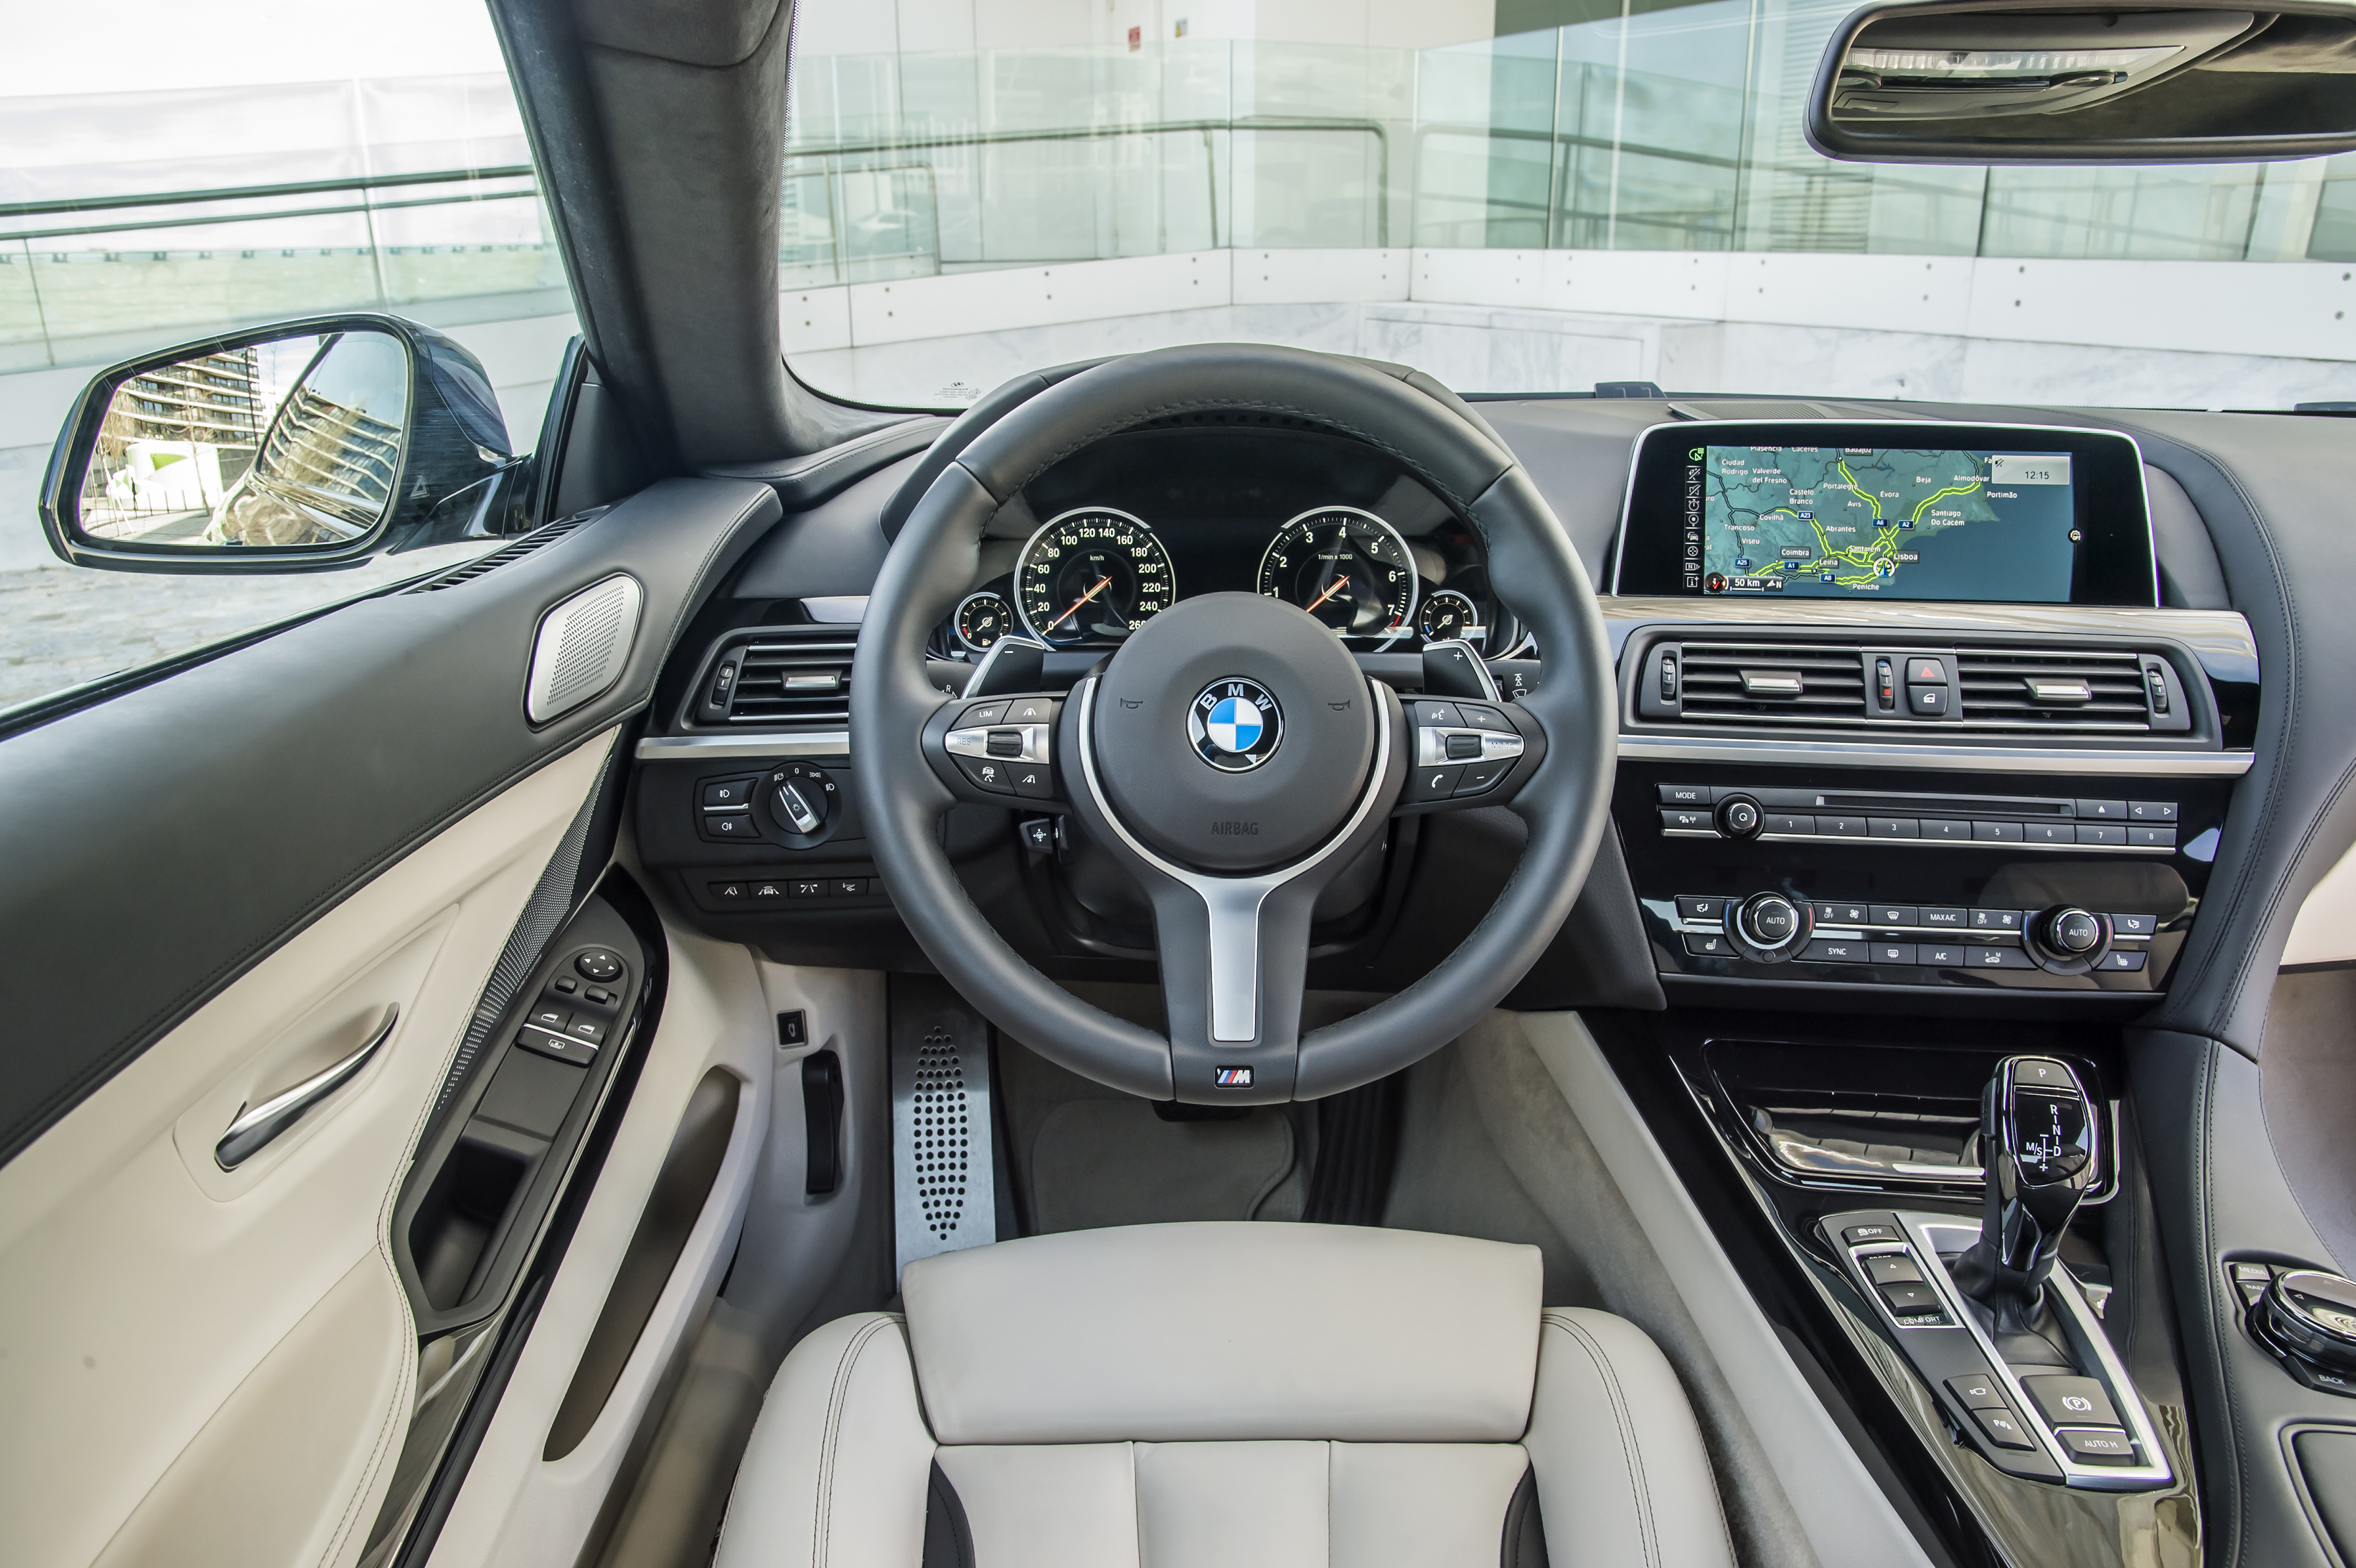 BMW 650i Coupe - interior